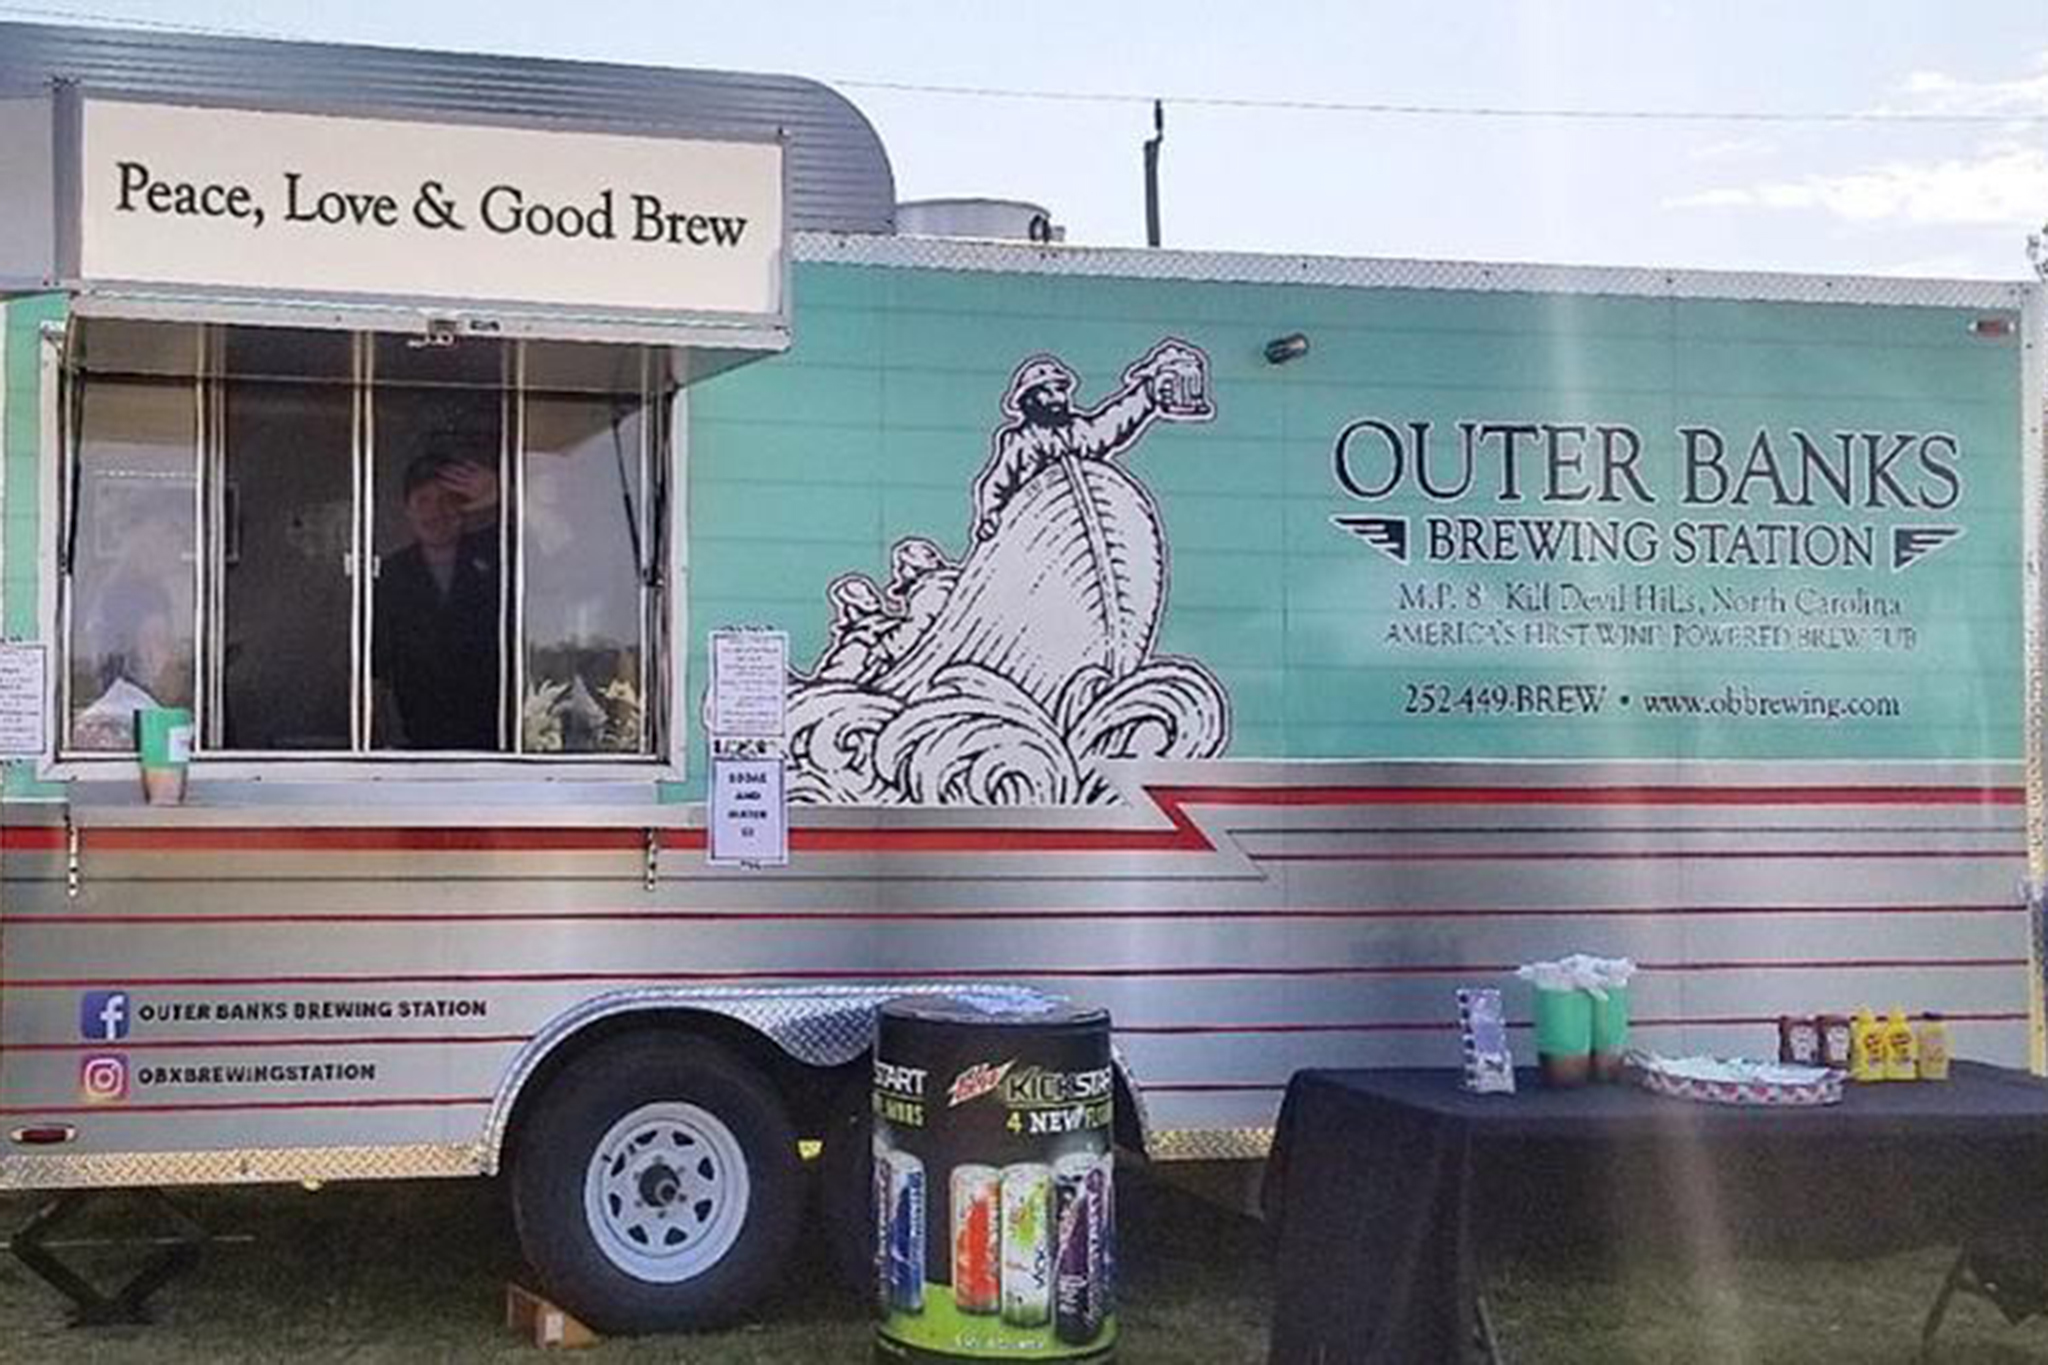 Outer Banks Brewing Station, eitw